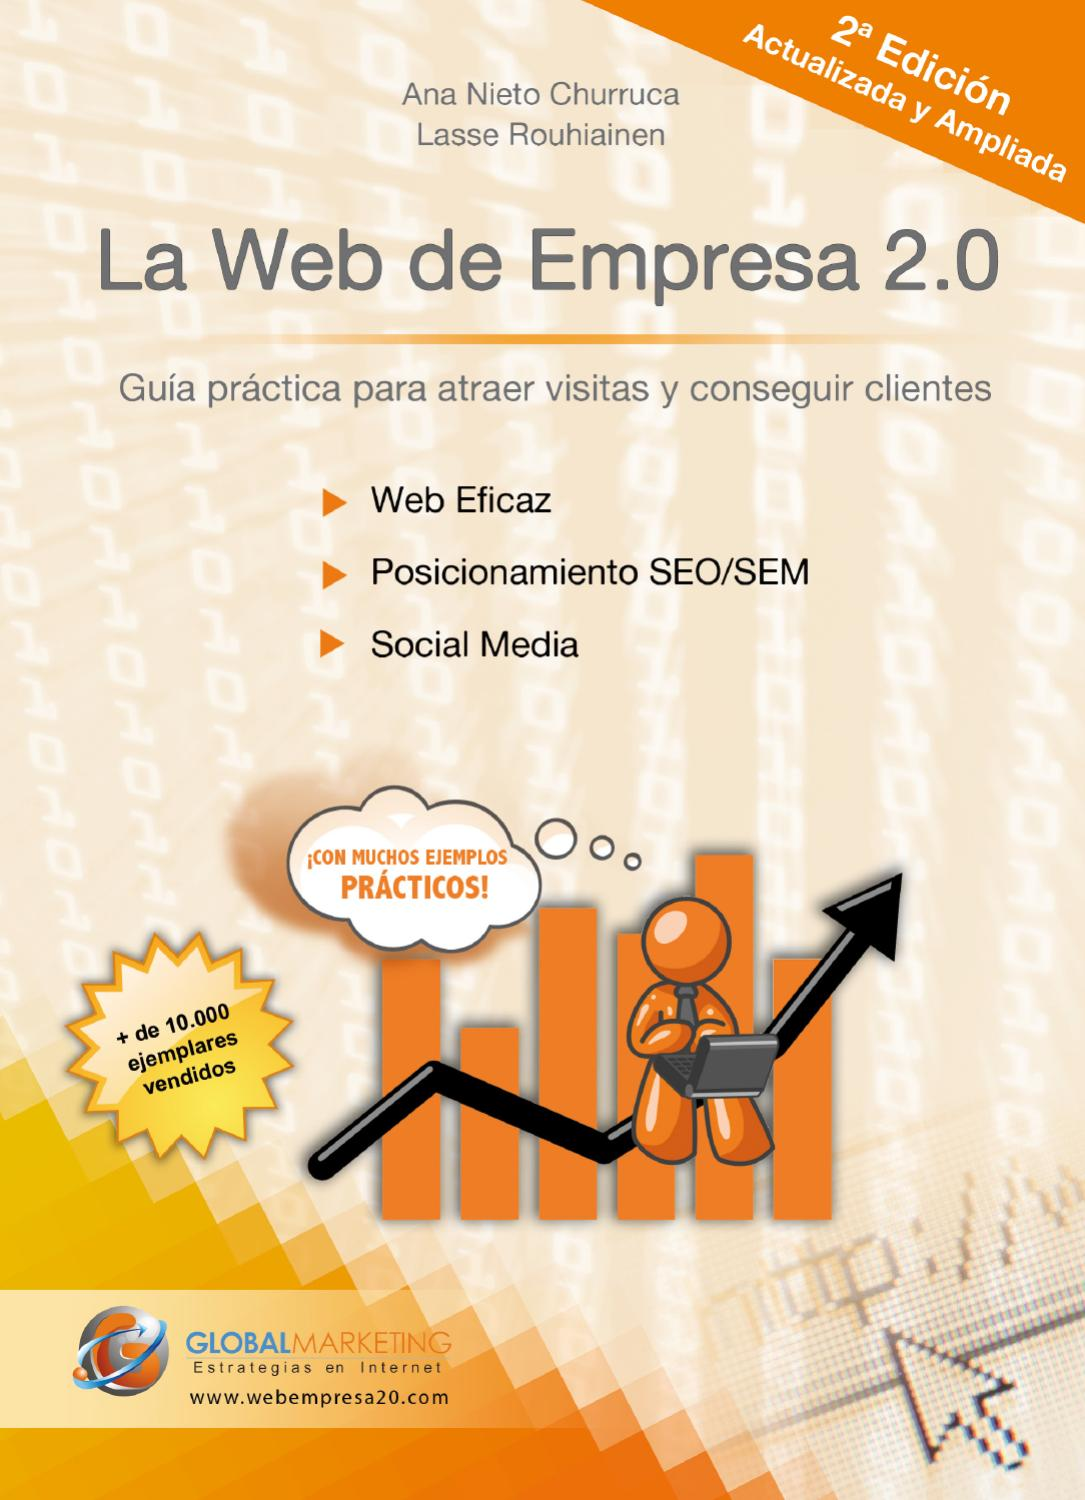 Libro De Visitas Empresa La Web De Empresa 2 2ª Edición By Global Marketing